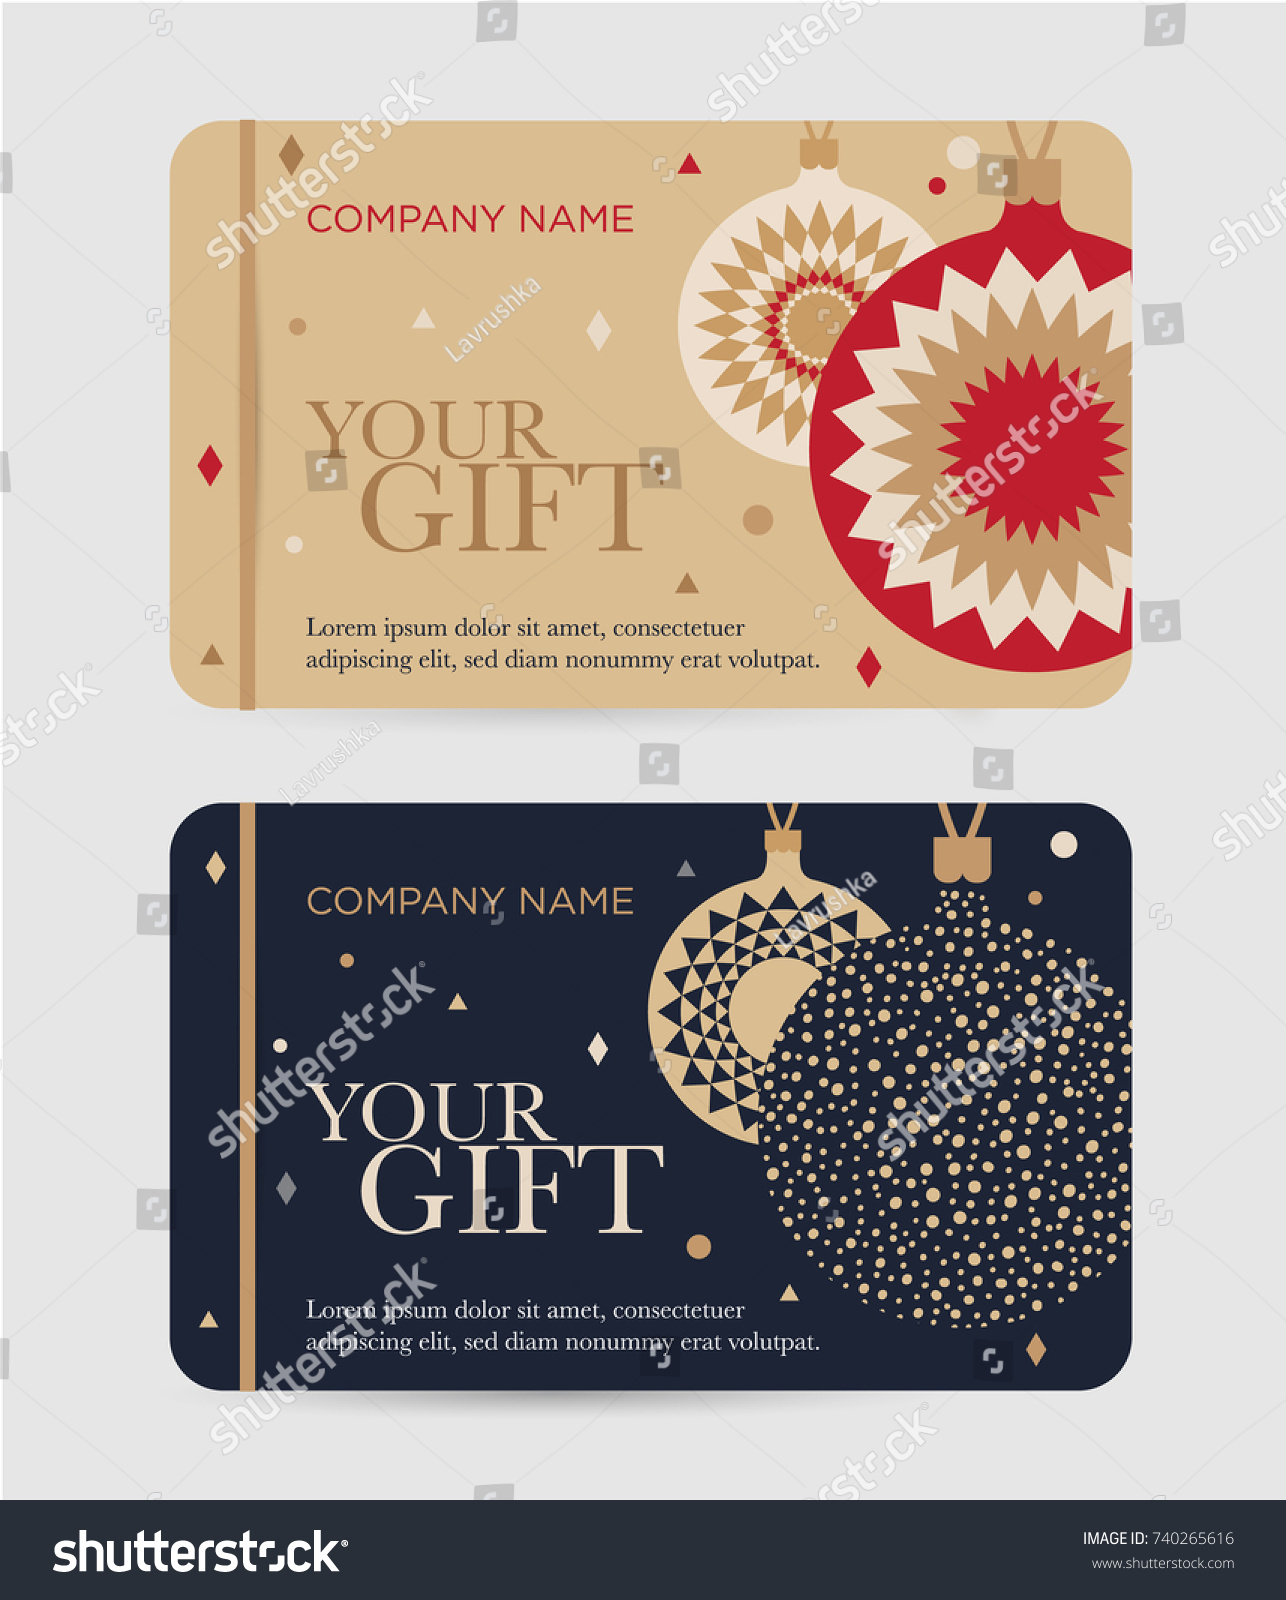 Christmas Gift Certificate Christmas Balls New Stock Vector Royalty Free 740265616